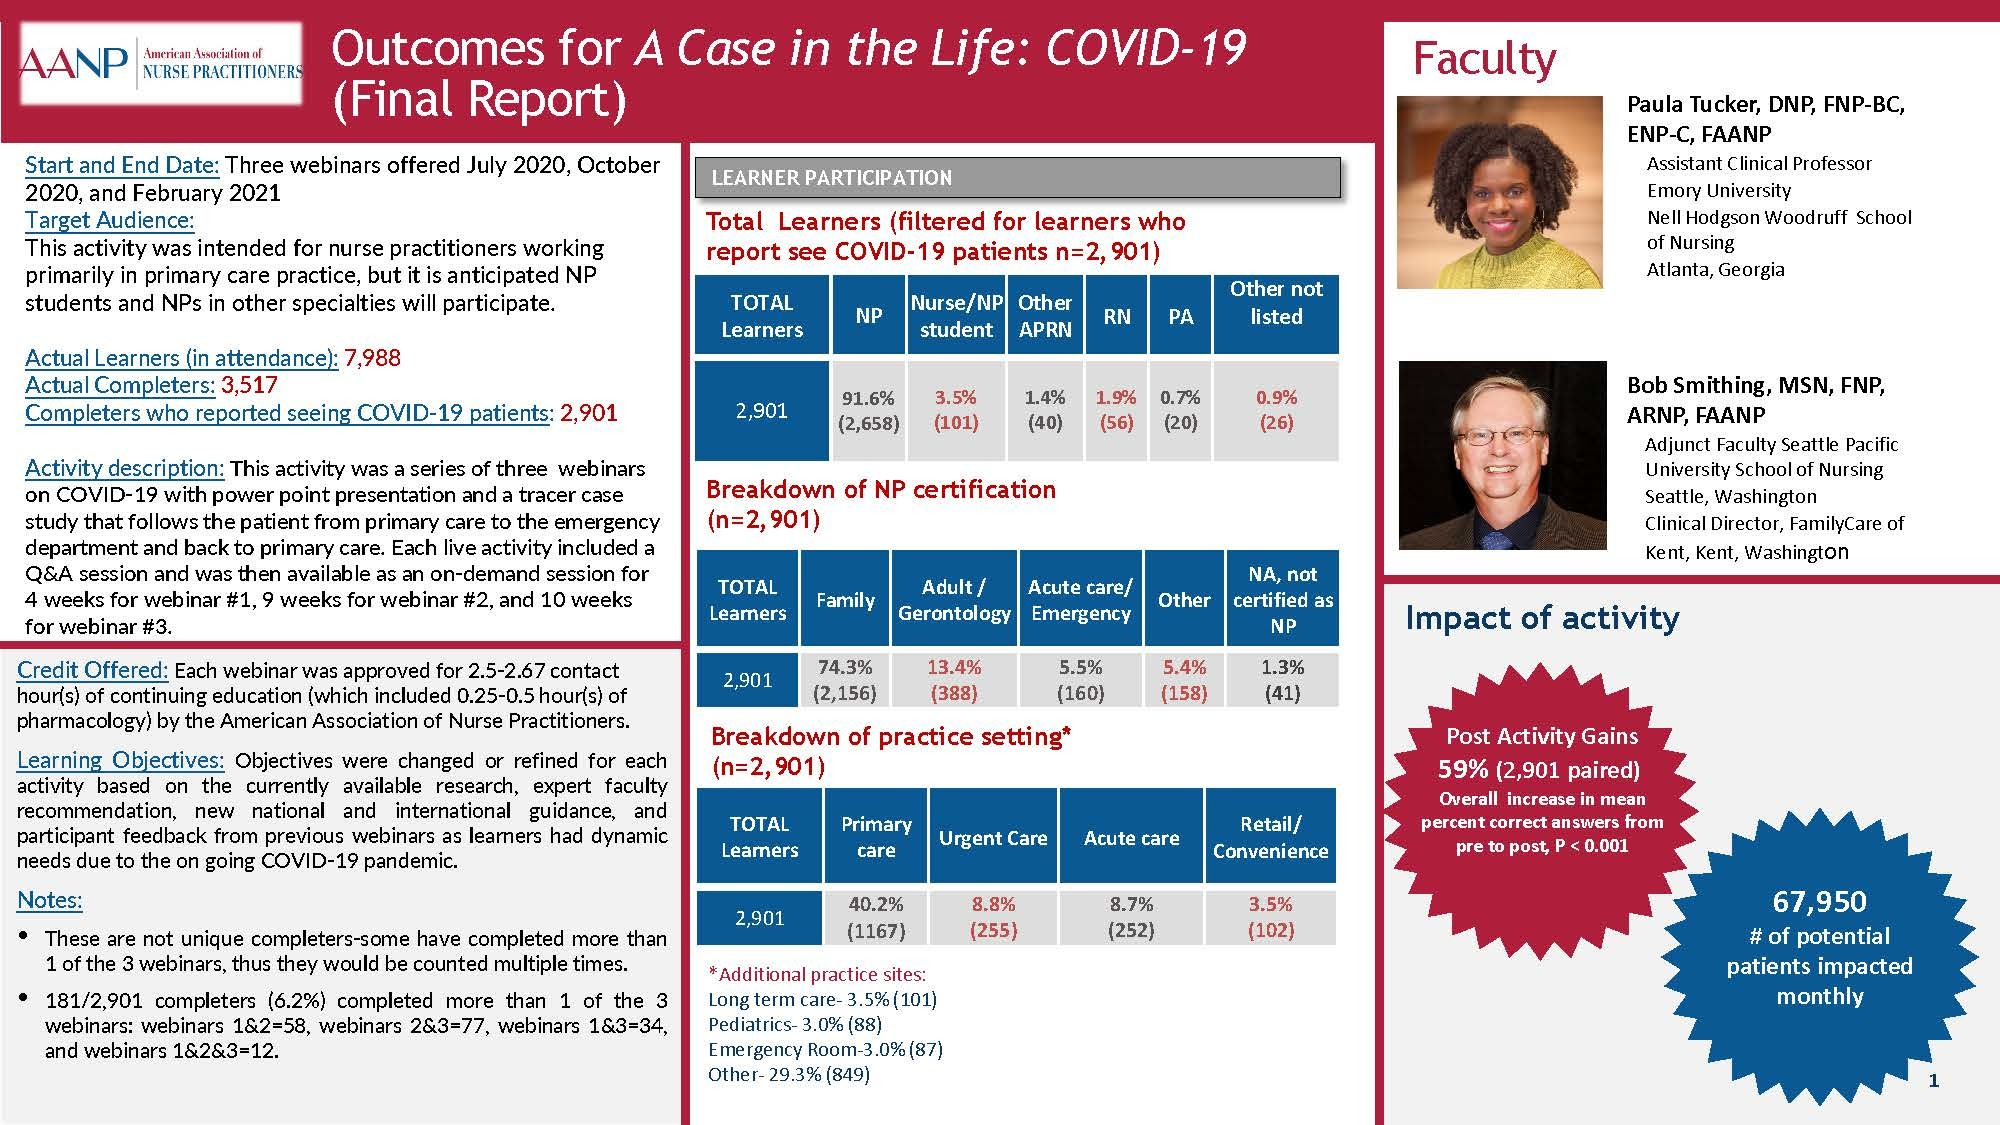 A Case in the Life: COVID-19 Outcomes Poster